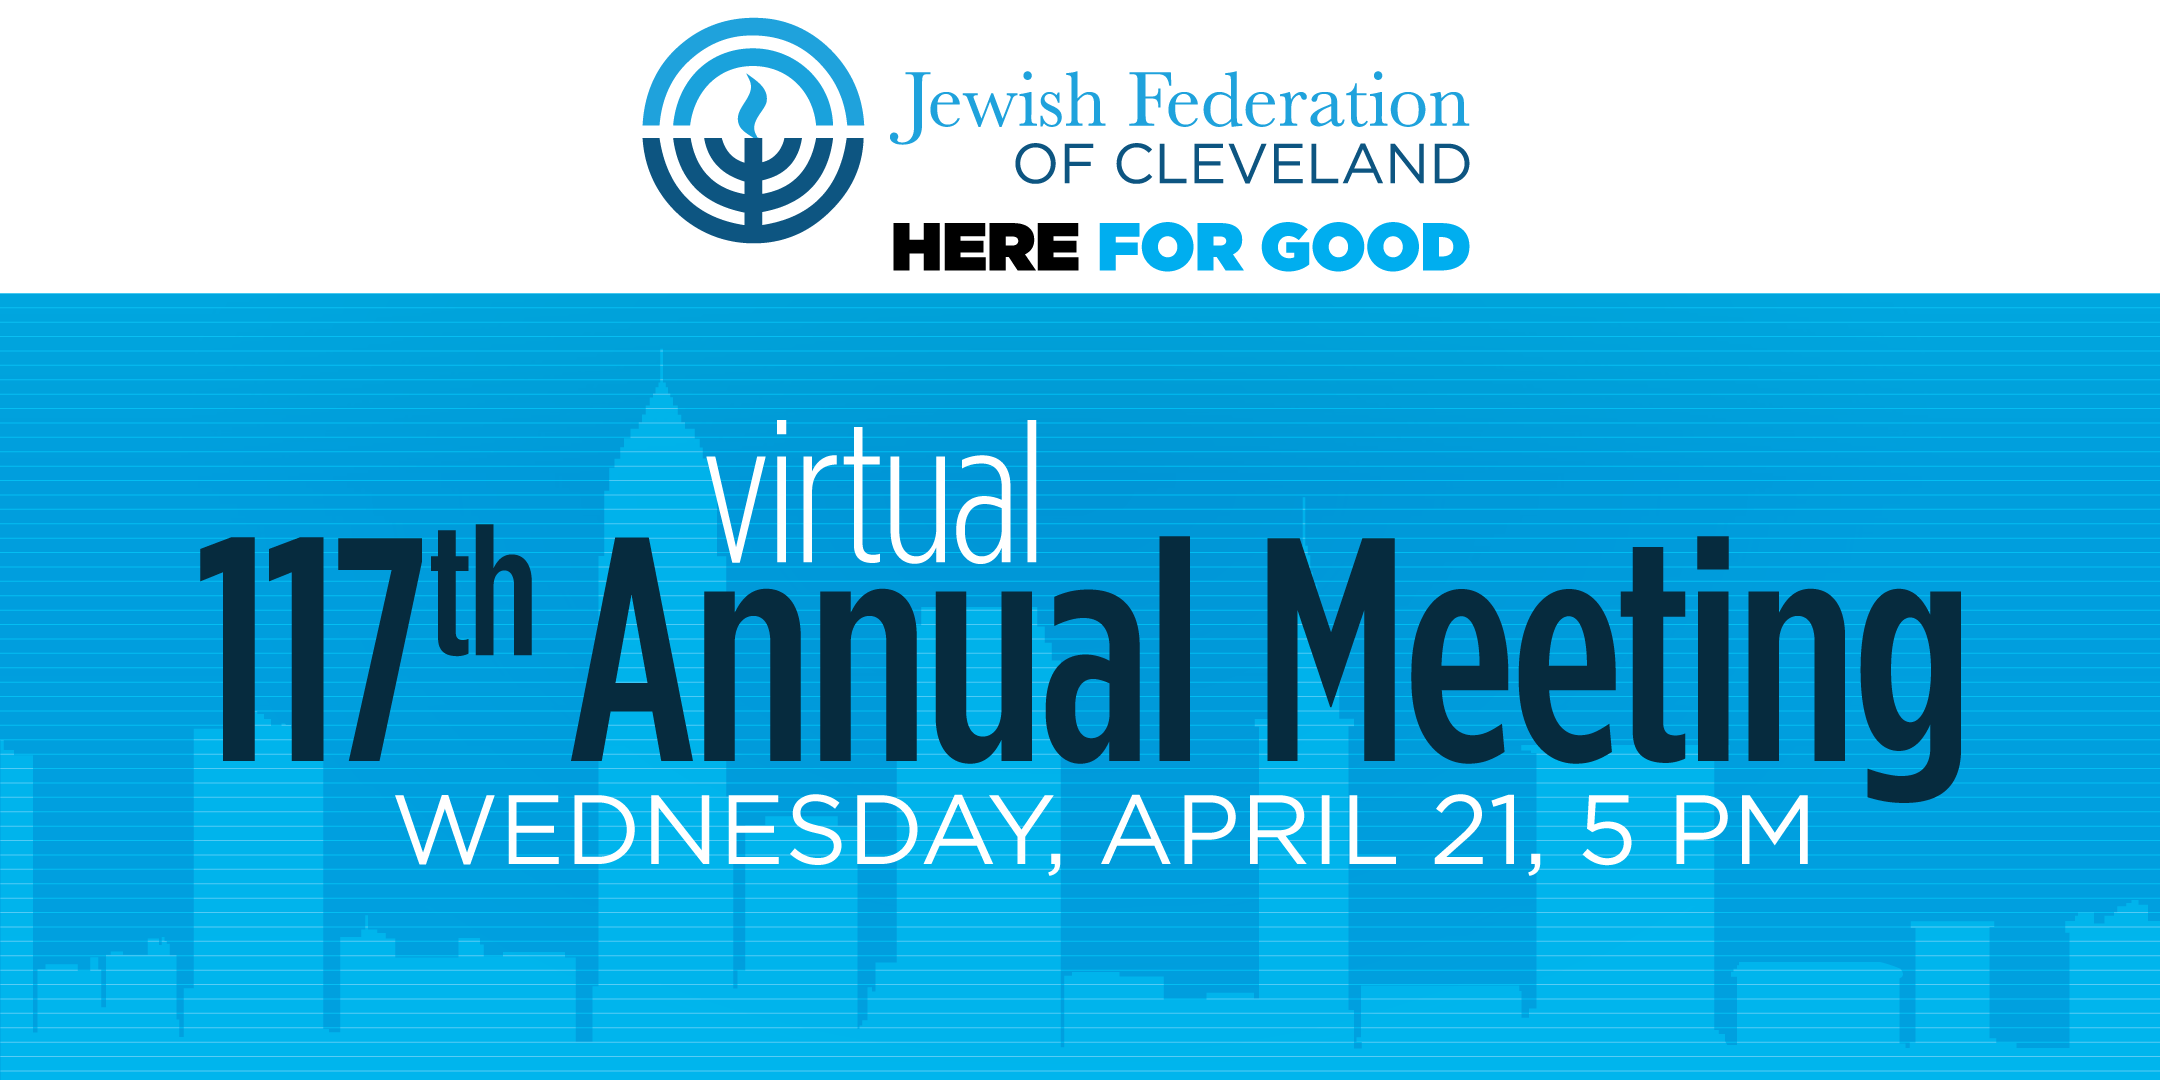 117th Annual Meeting of the Jewish Federation of Cleveland Set for April 21